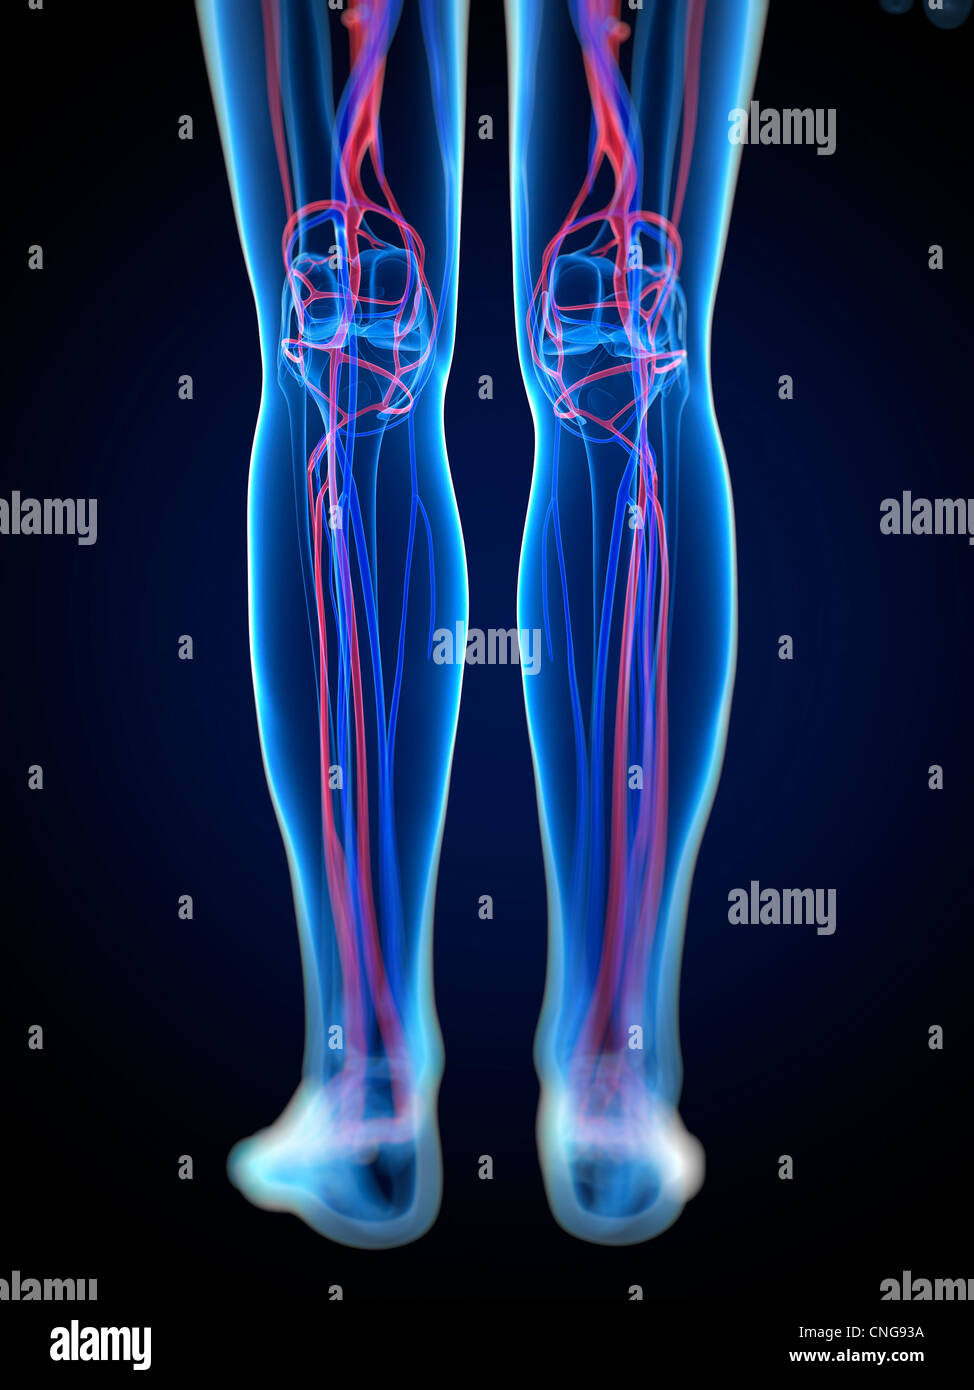 Vascular System Of The Legs Stock Photos & Vascular System Of The ...